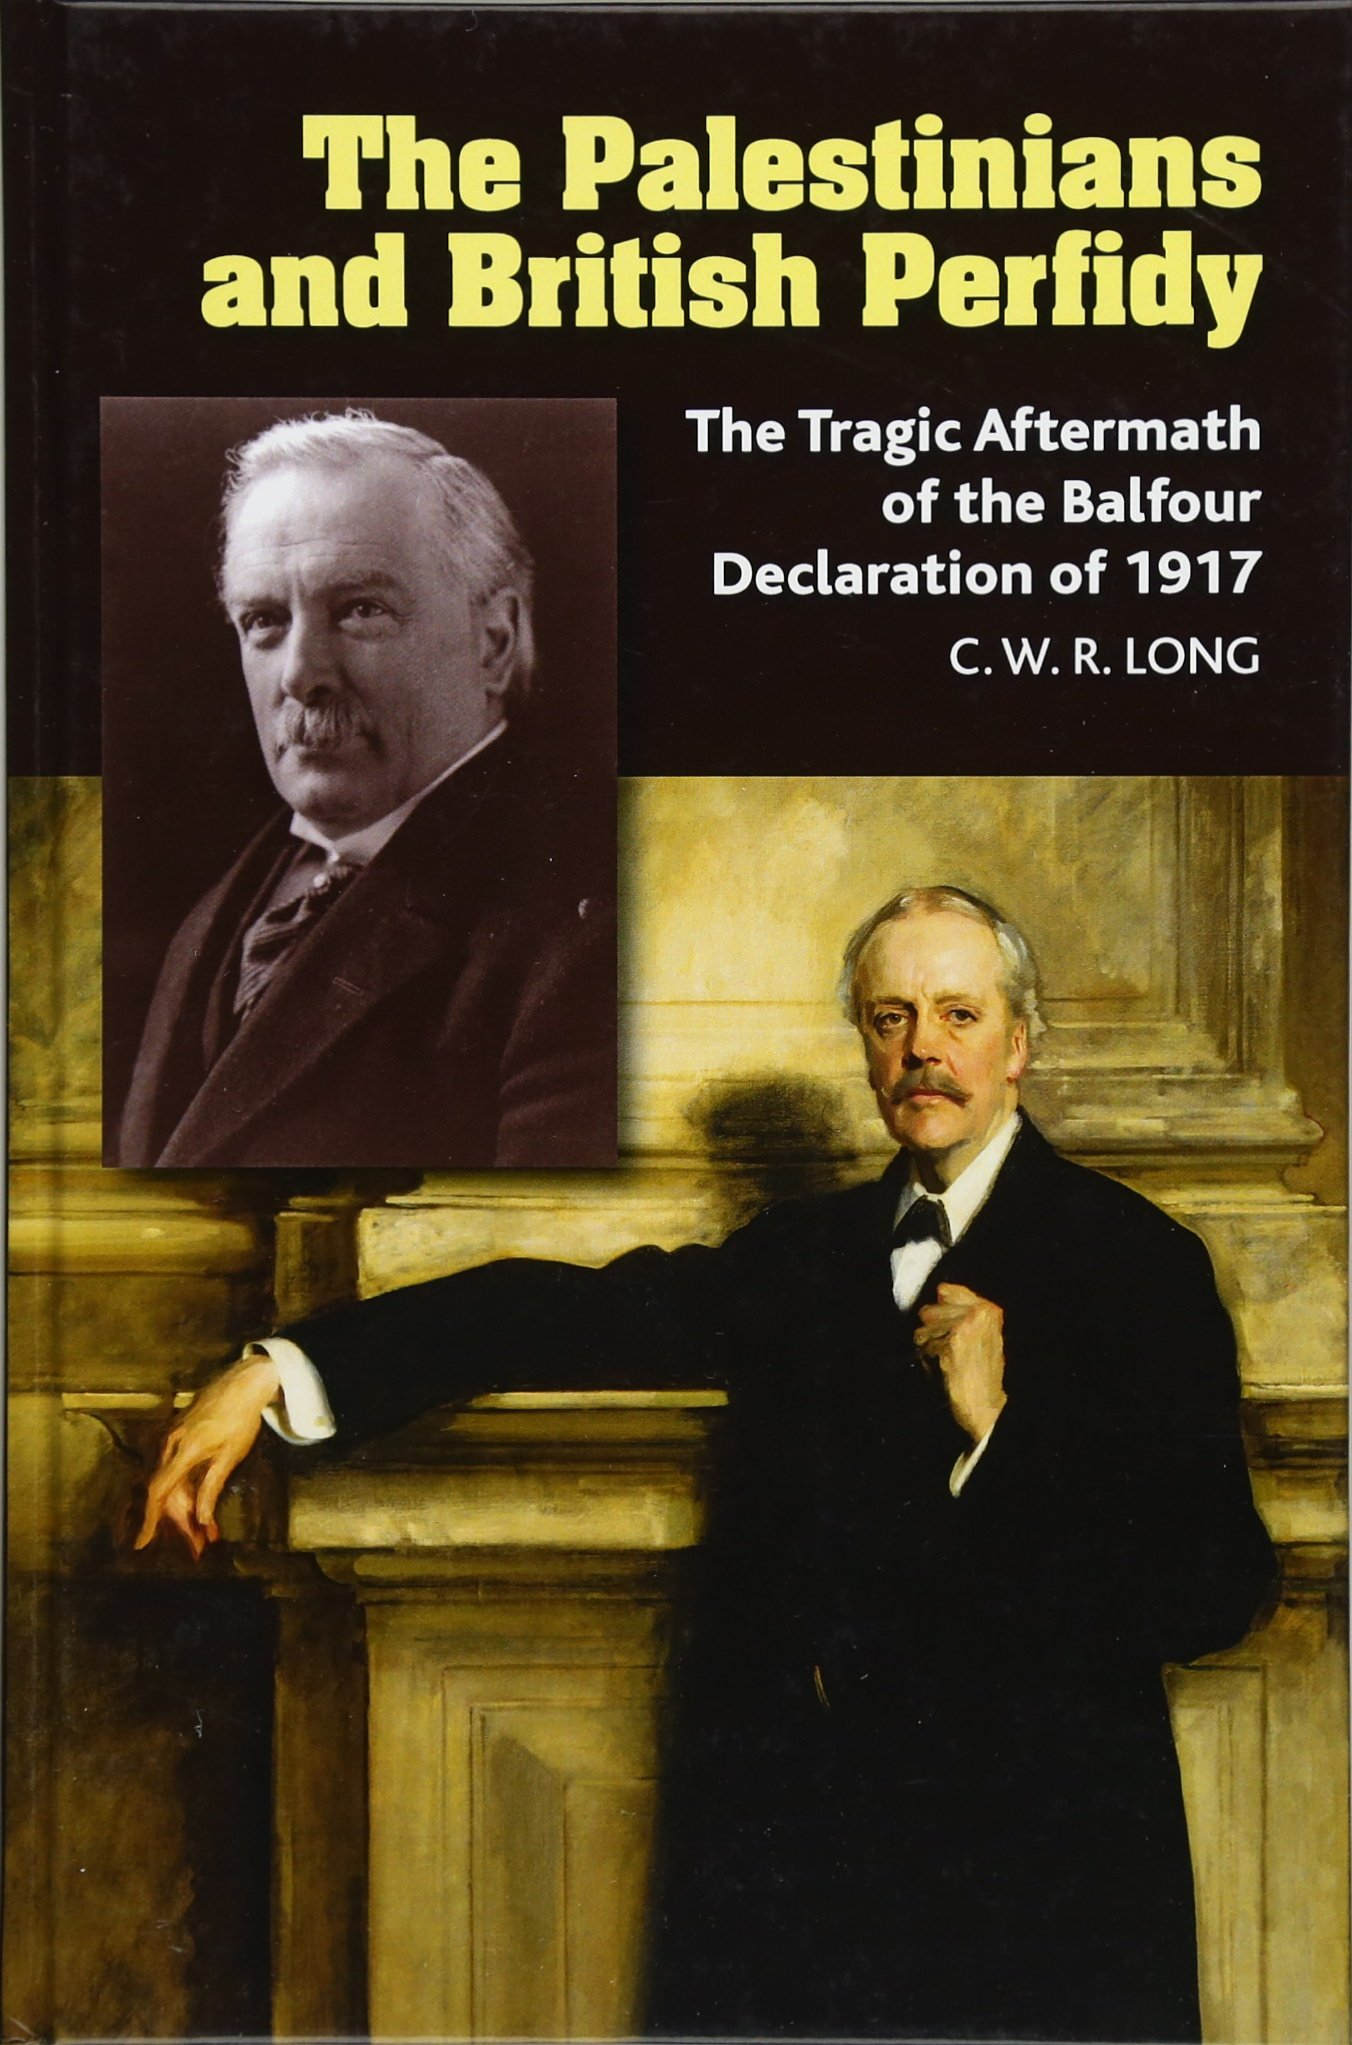 The Palestinians and British Perfidy: The Tragic Aftermath of the Balfour Declaration of 1917 by Sussex Academic Press